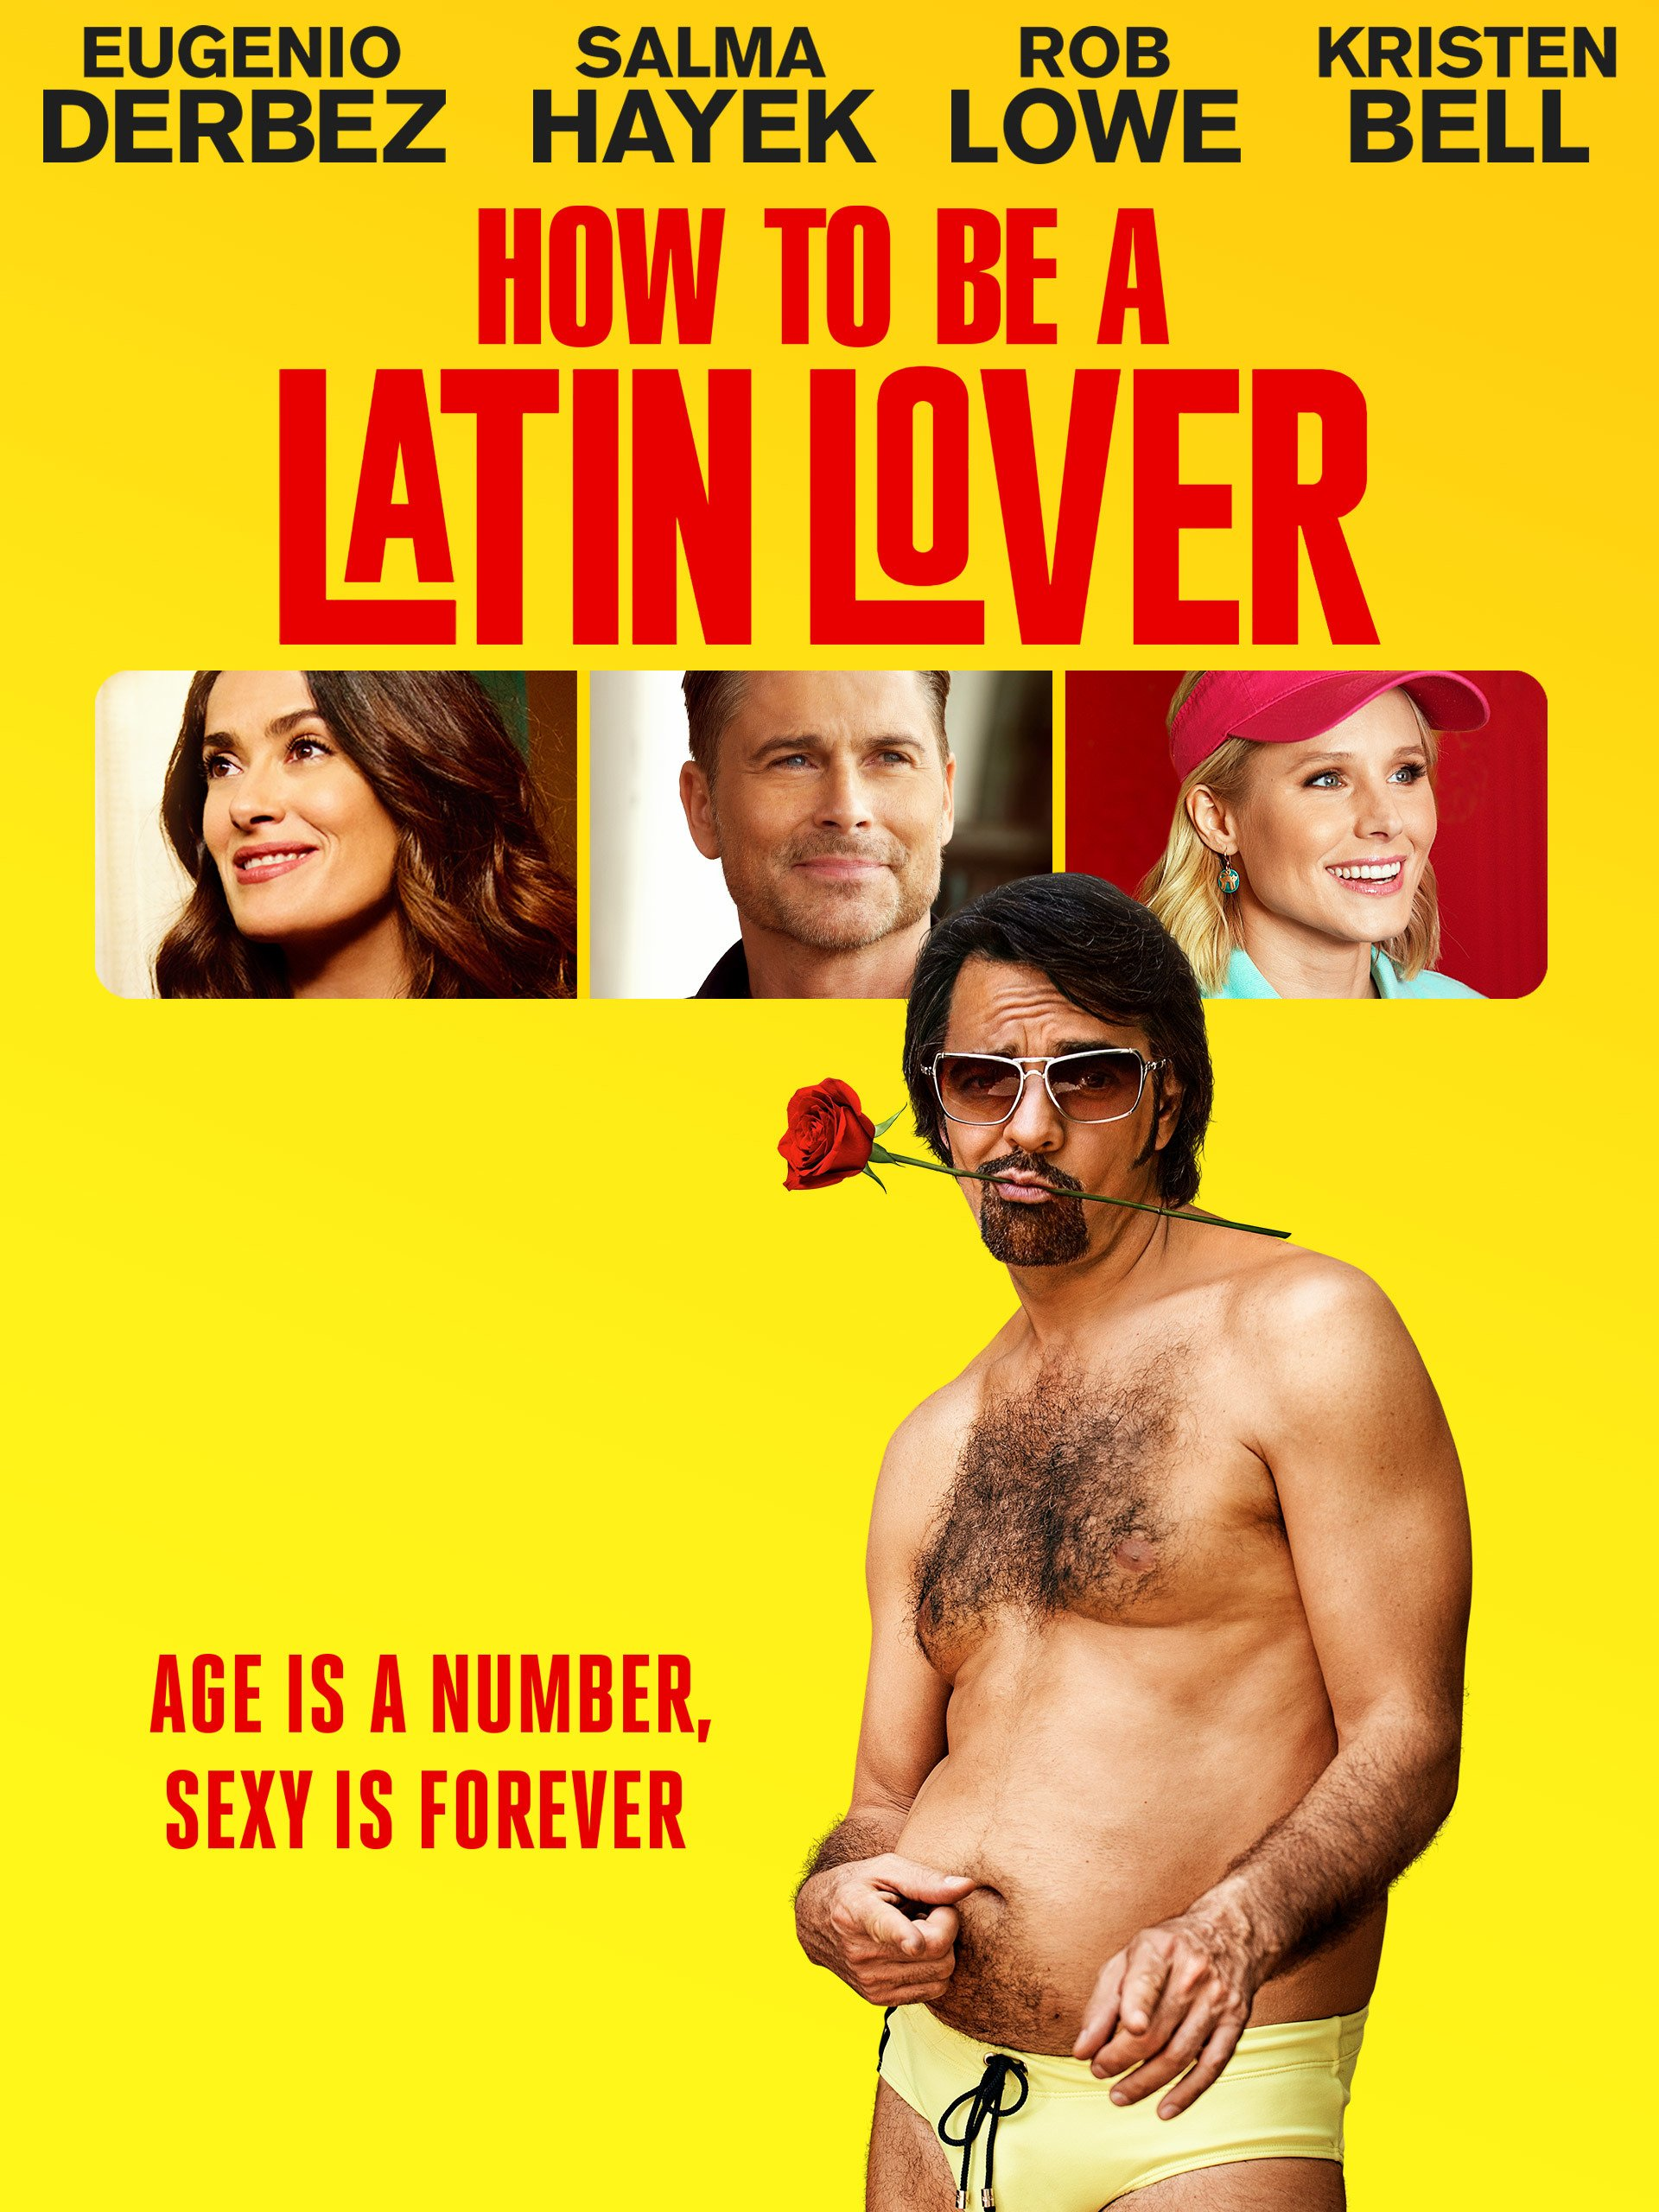 Amazon: How To Be A Latin Lover: Eugenio Derbez, Salma Hayek, Rob Lowe,  Kristen Bell: Amazon Digital Services Llc